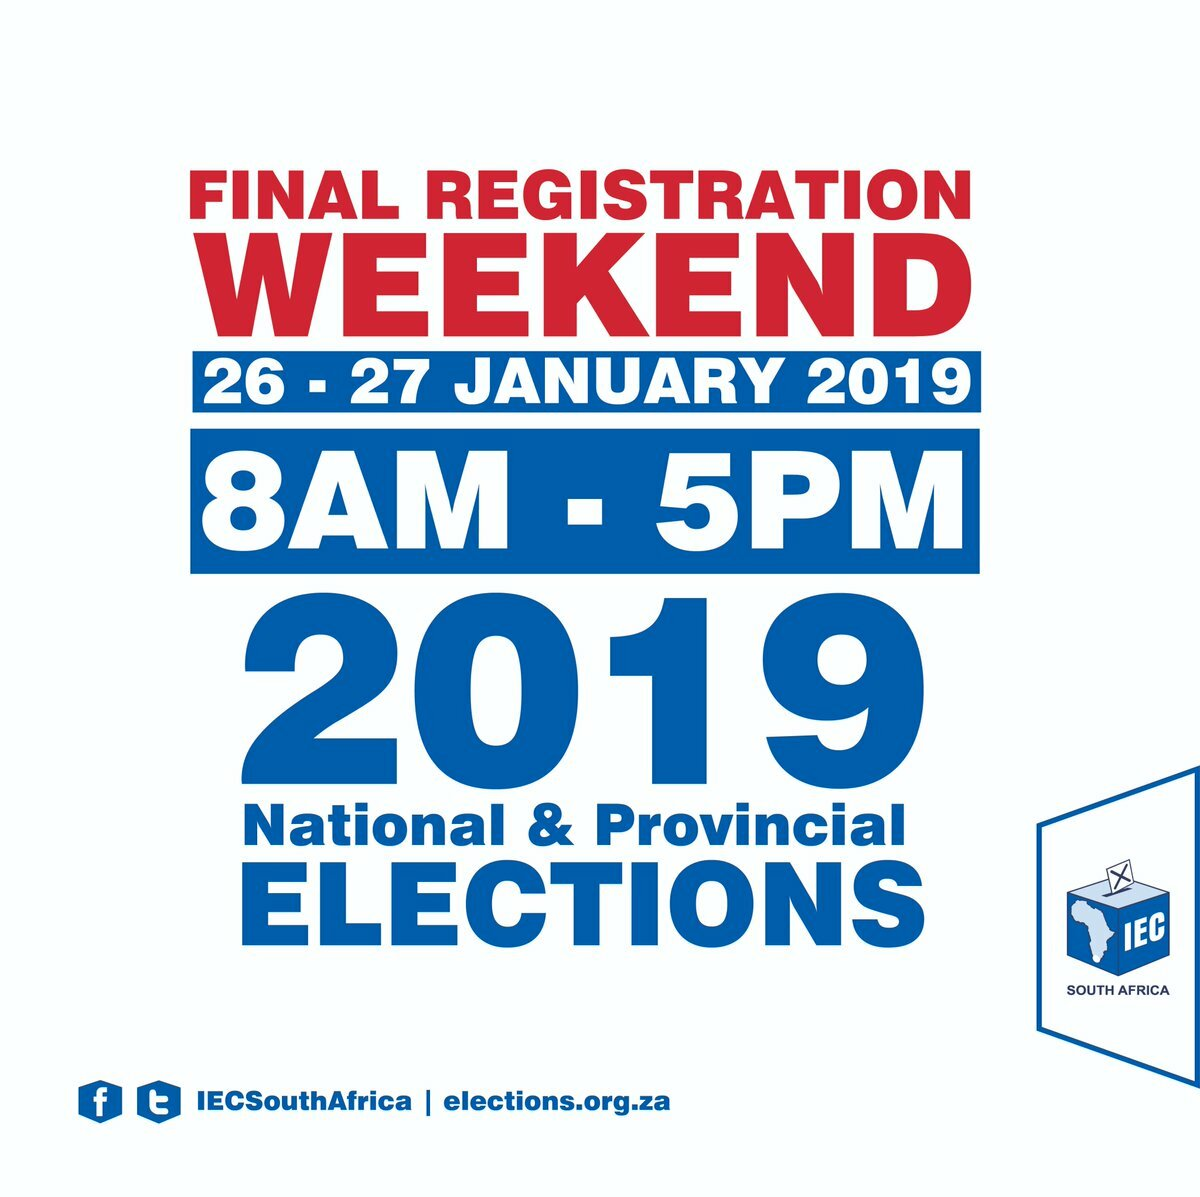 Last chance to get registered as a voter this weekend